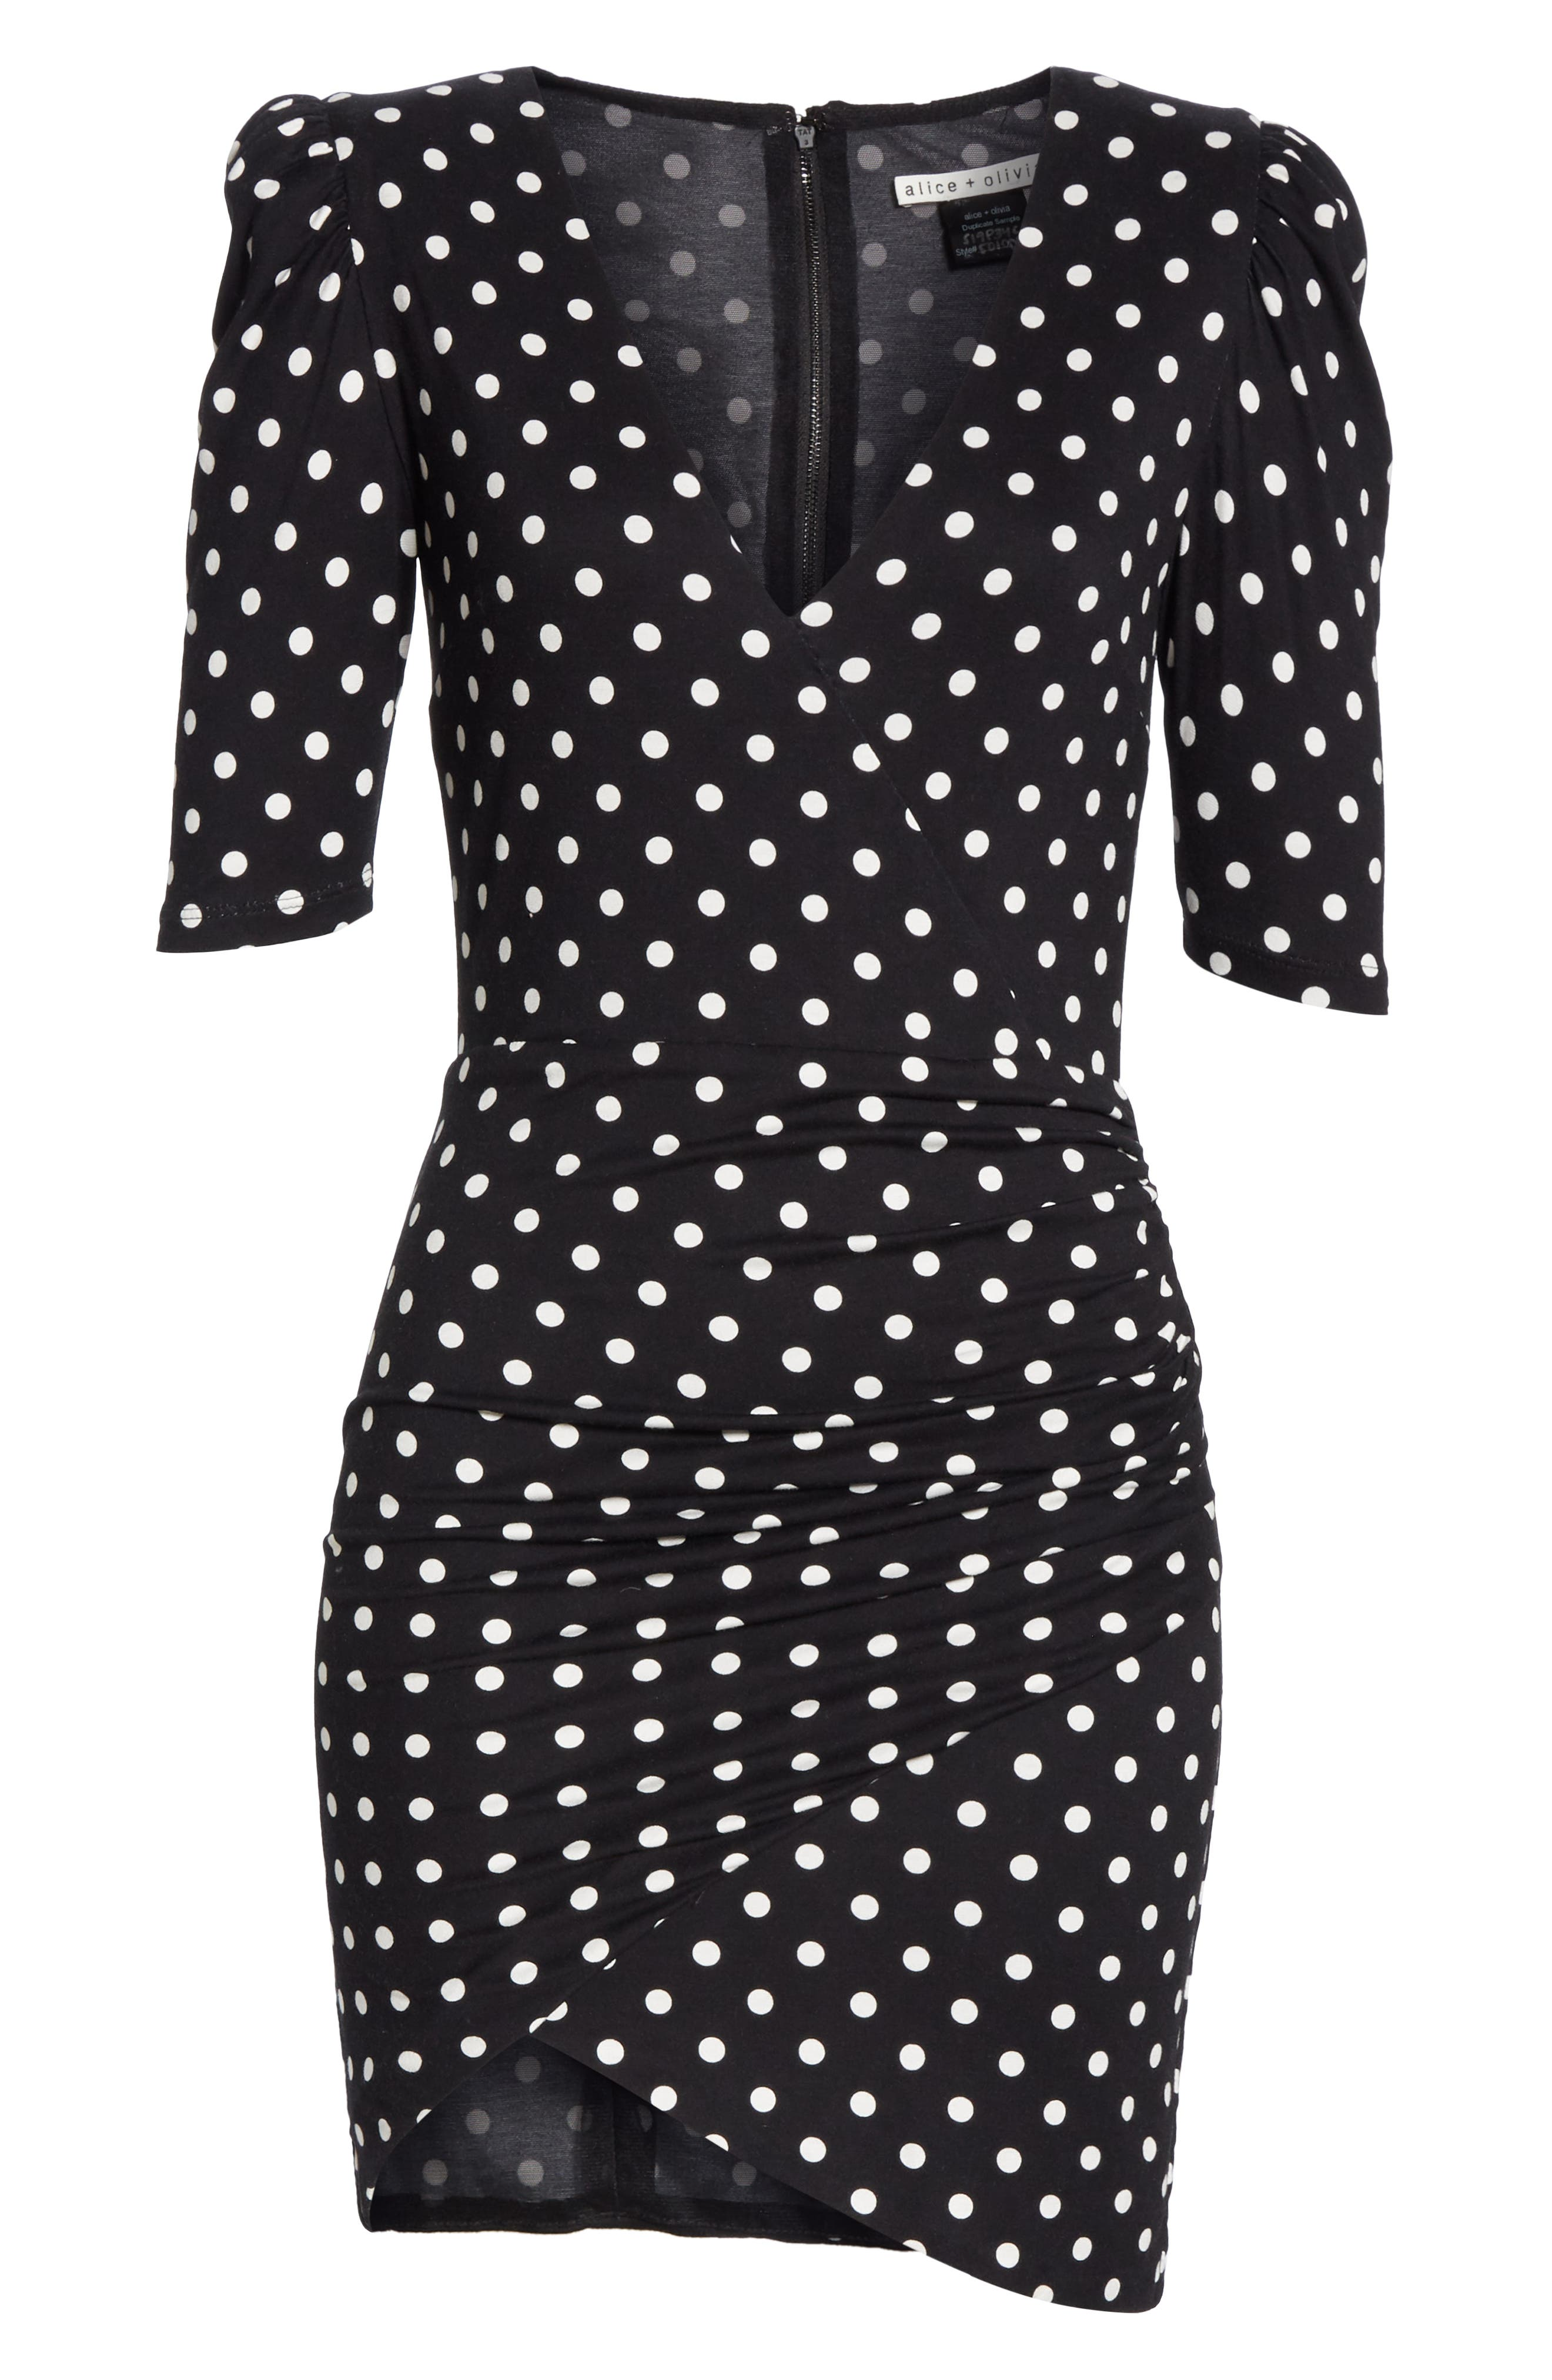 ALICE + OLIVIA, Judy Ruched Faux Wrap Dress, Alternate thumbnail 6, color, 001